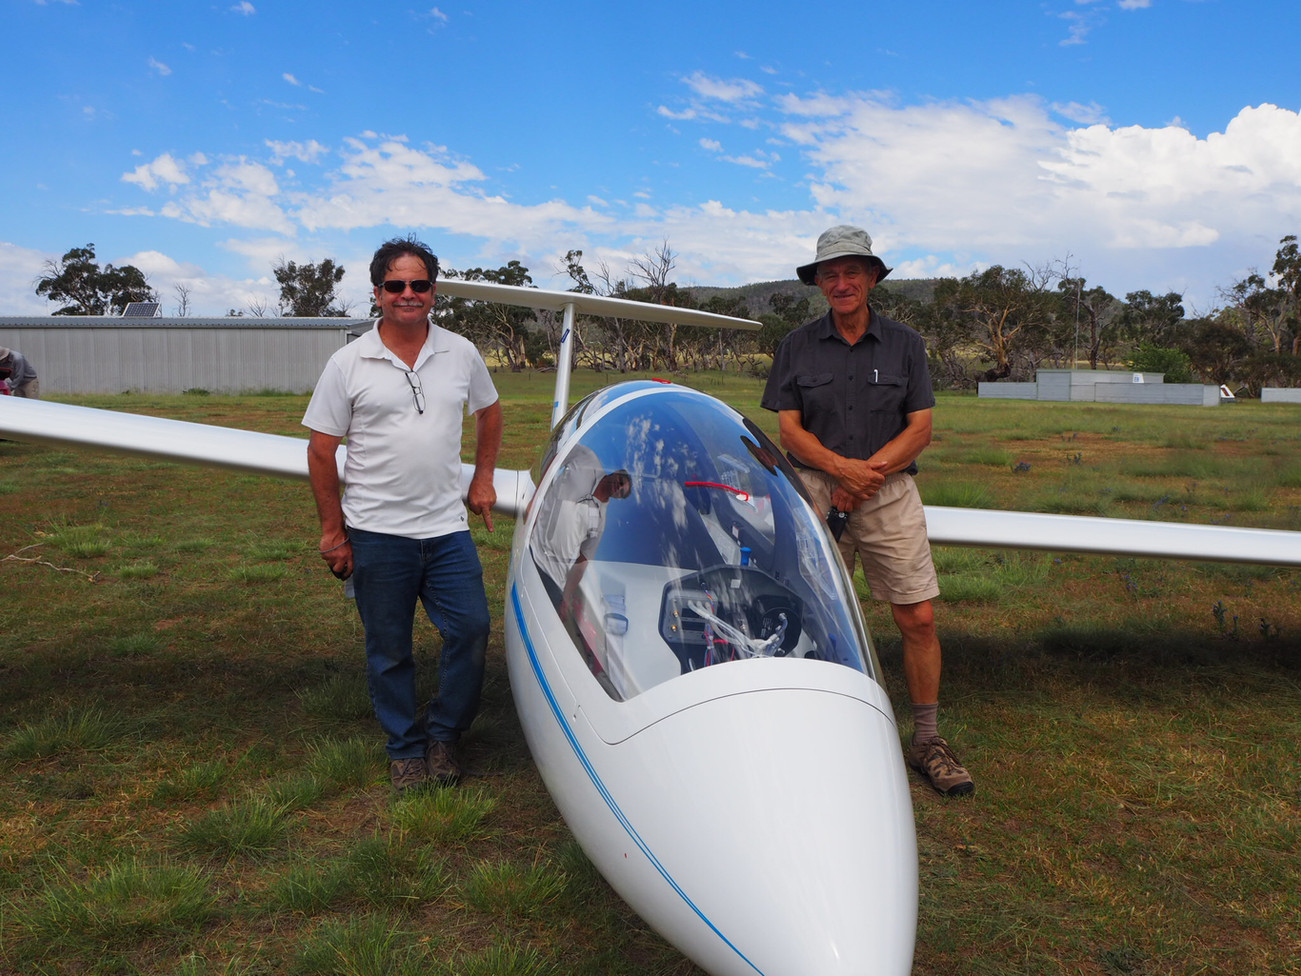 The newest addition to our Club (the glider, not the people).